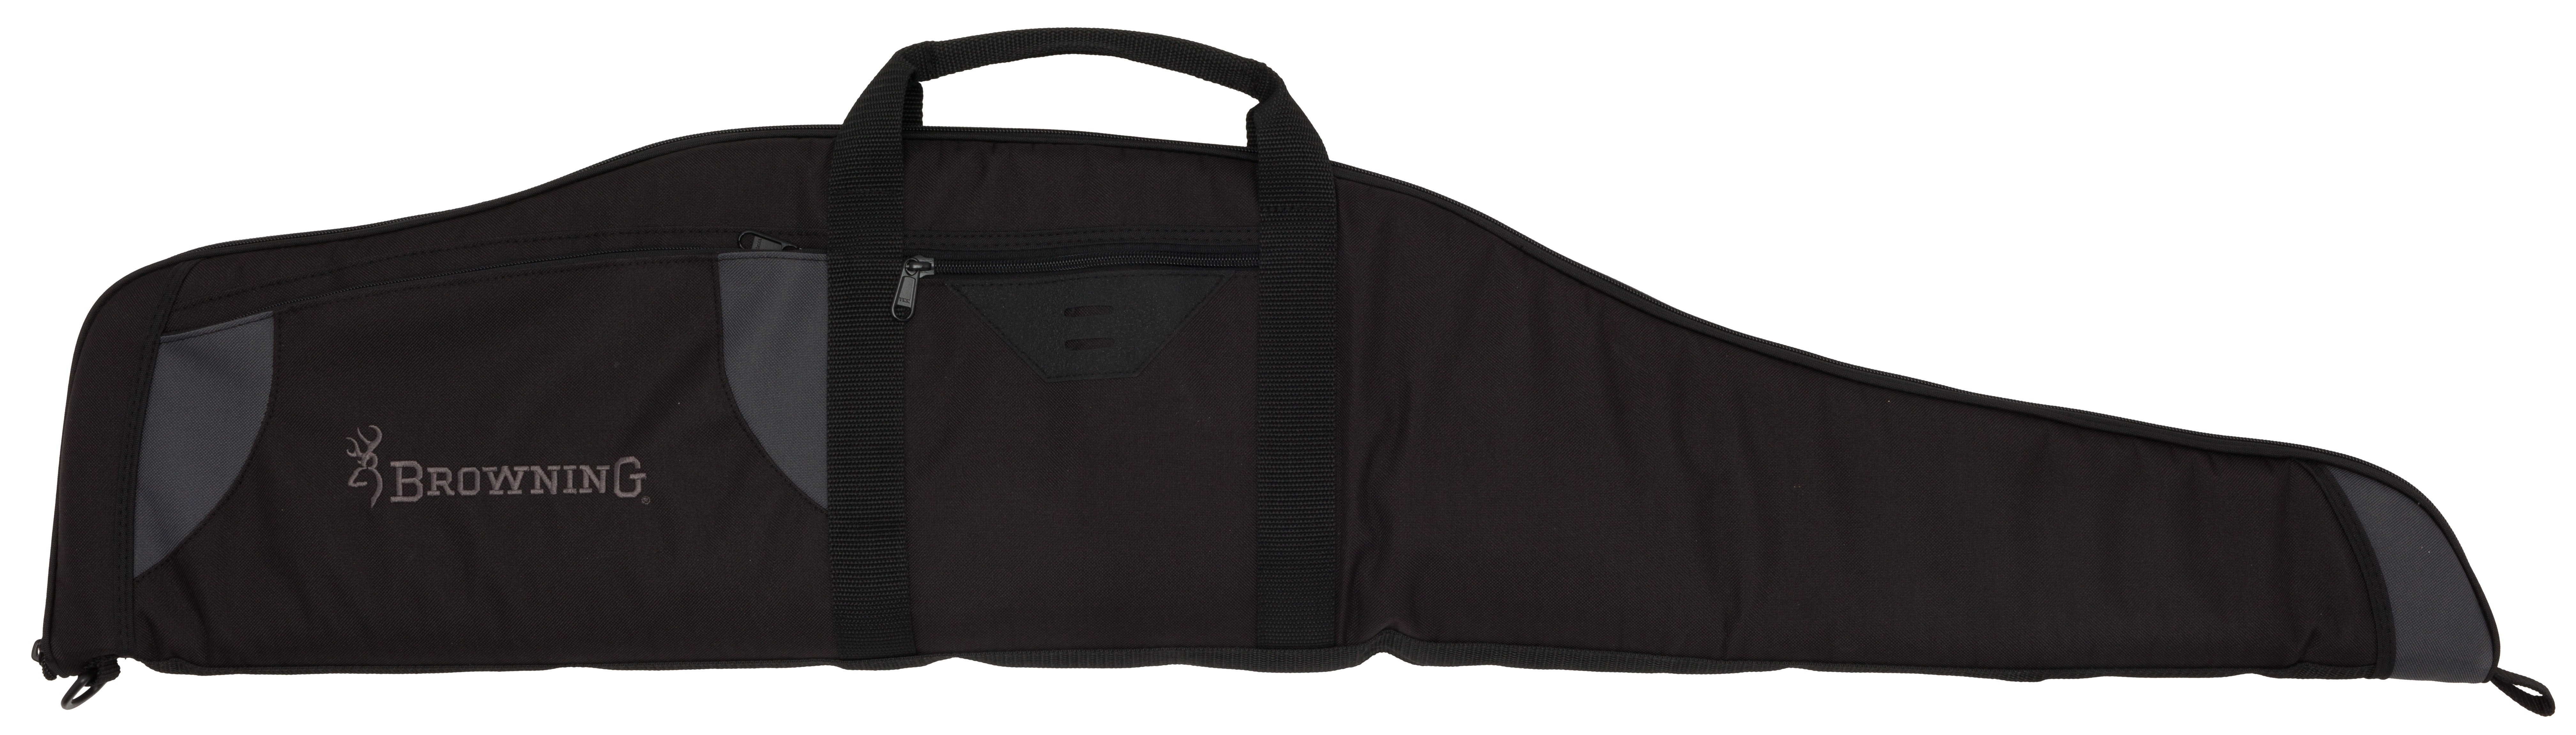 Browning Crossfire Scoped Soft Rifle Case - 48